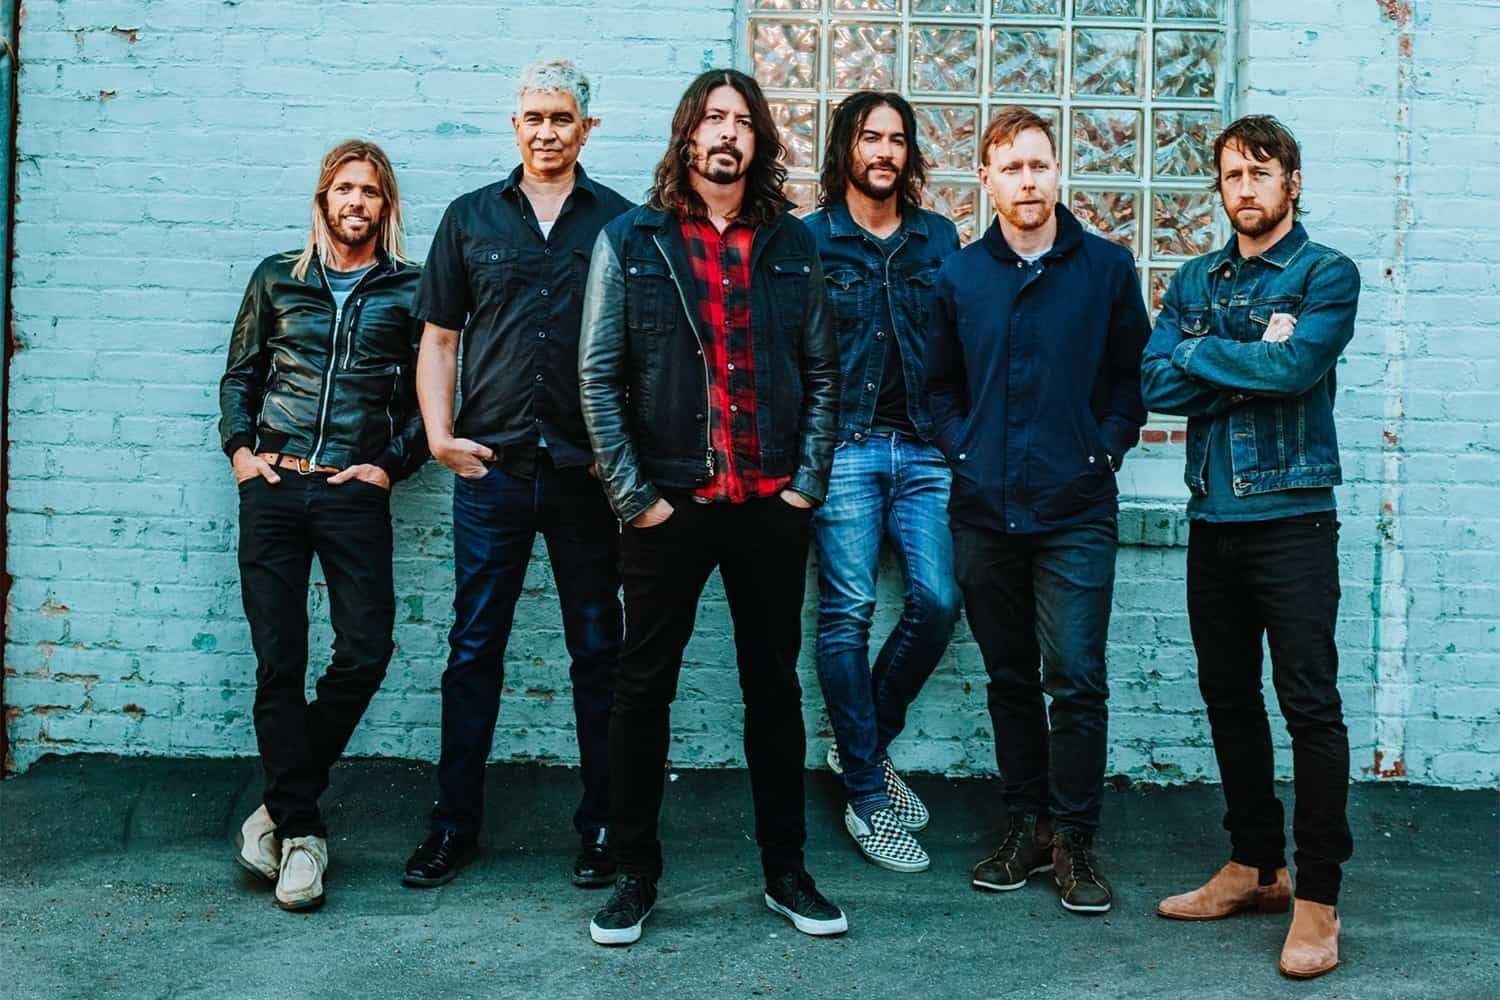 Dave Grohl has released his new two-part mini-documentary, Play